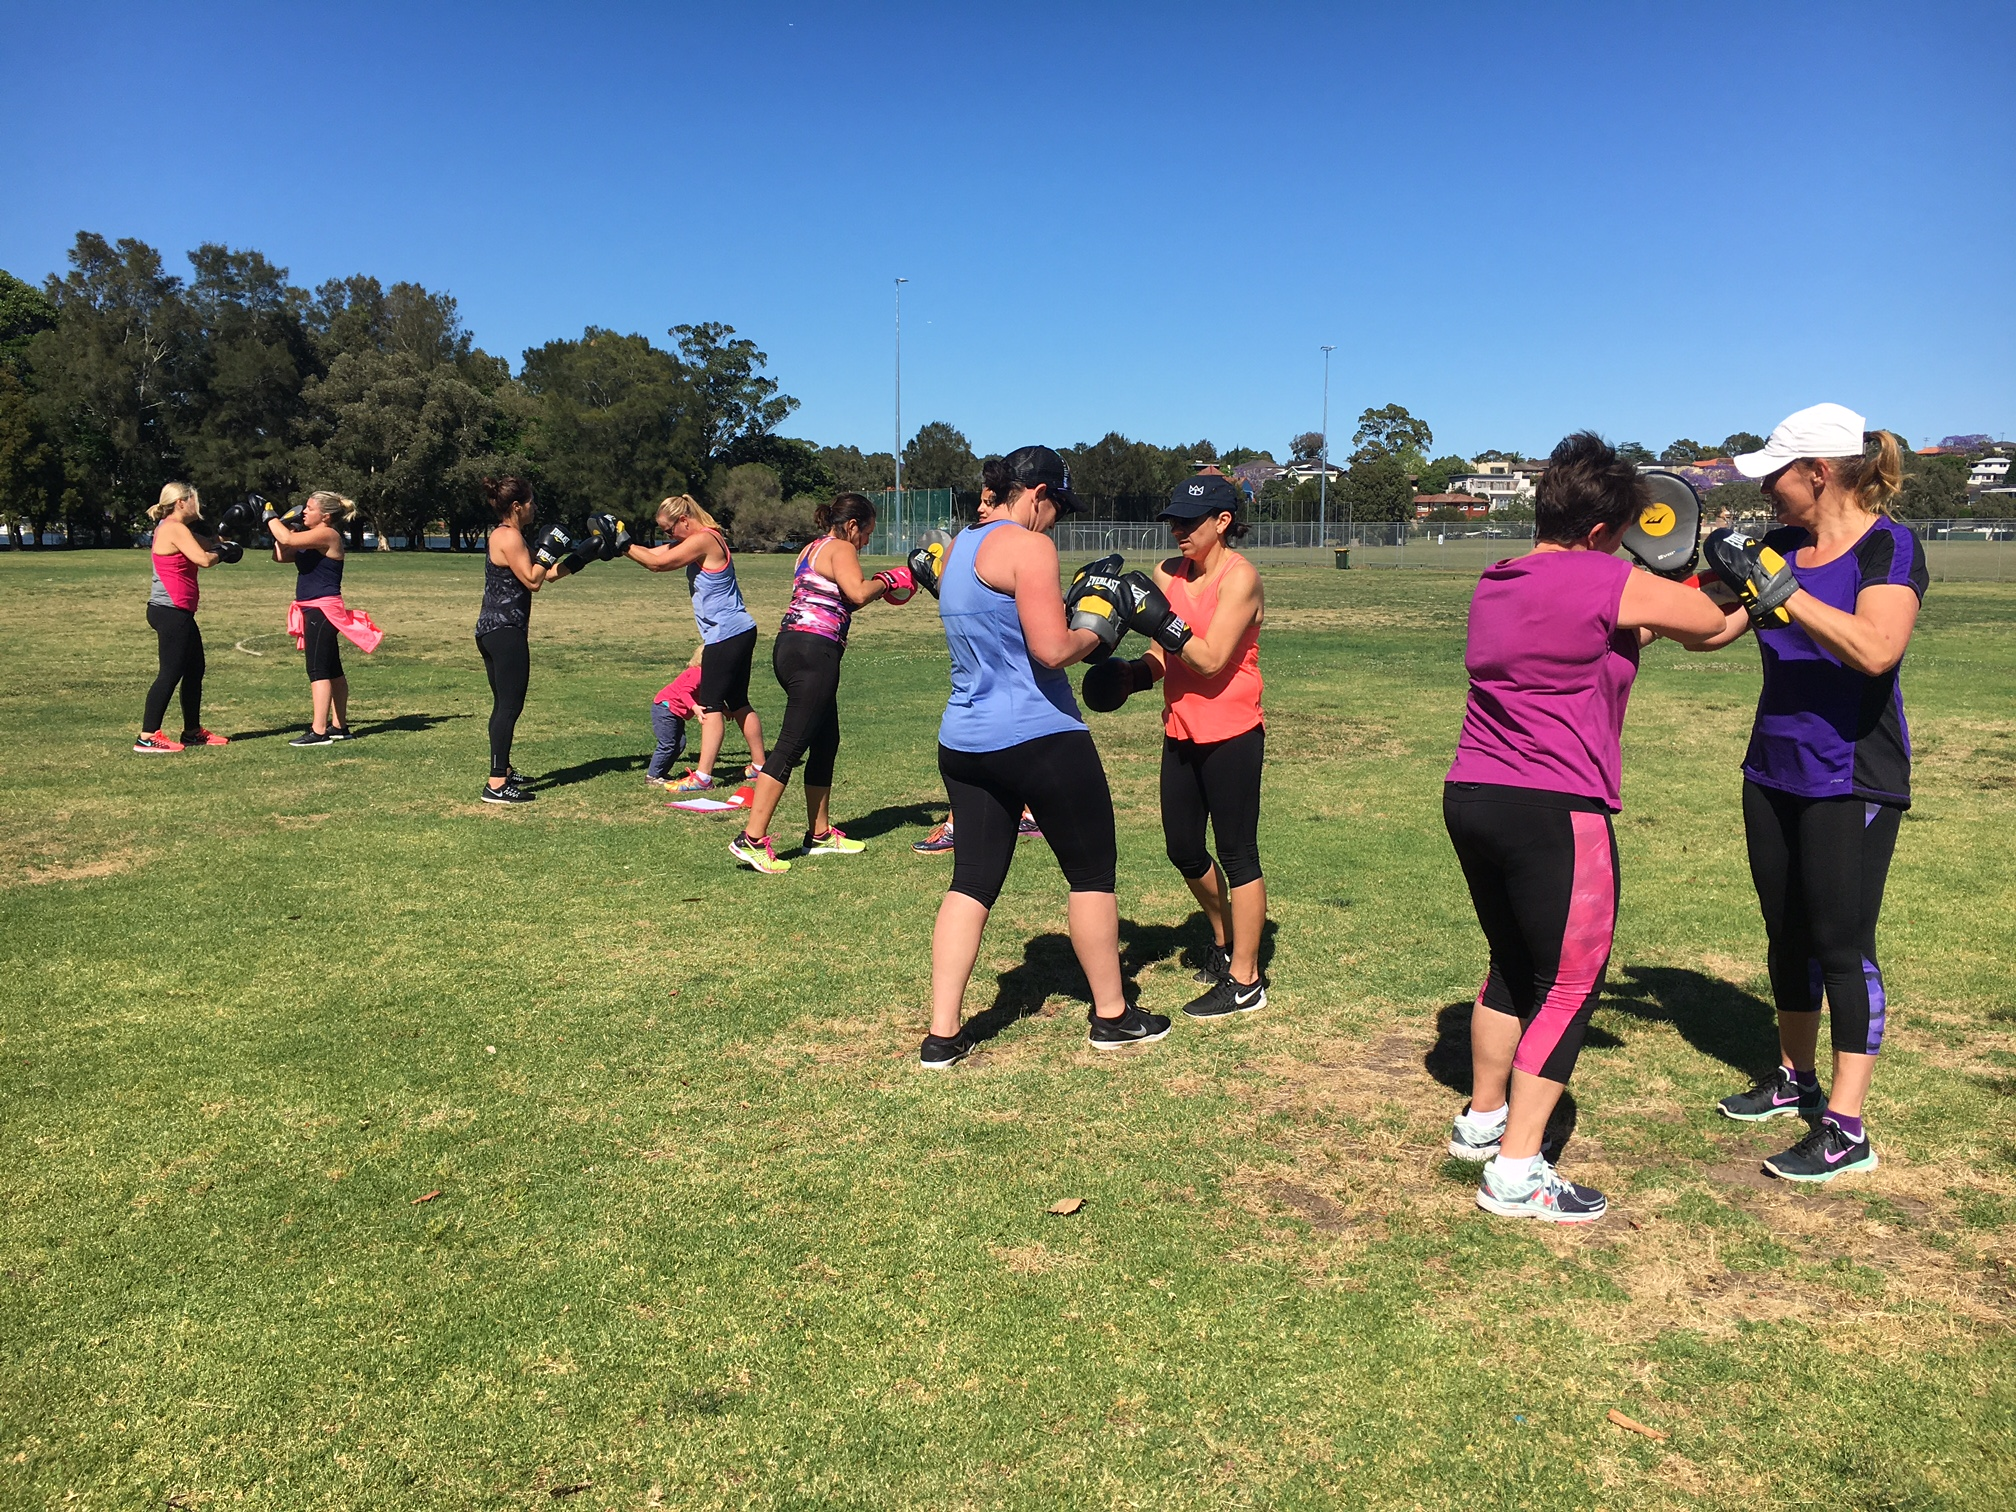 Empower Womens Fitness: Outdoor Group Fitness and Personal Training